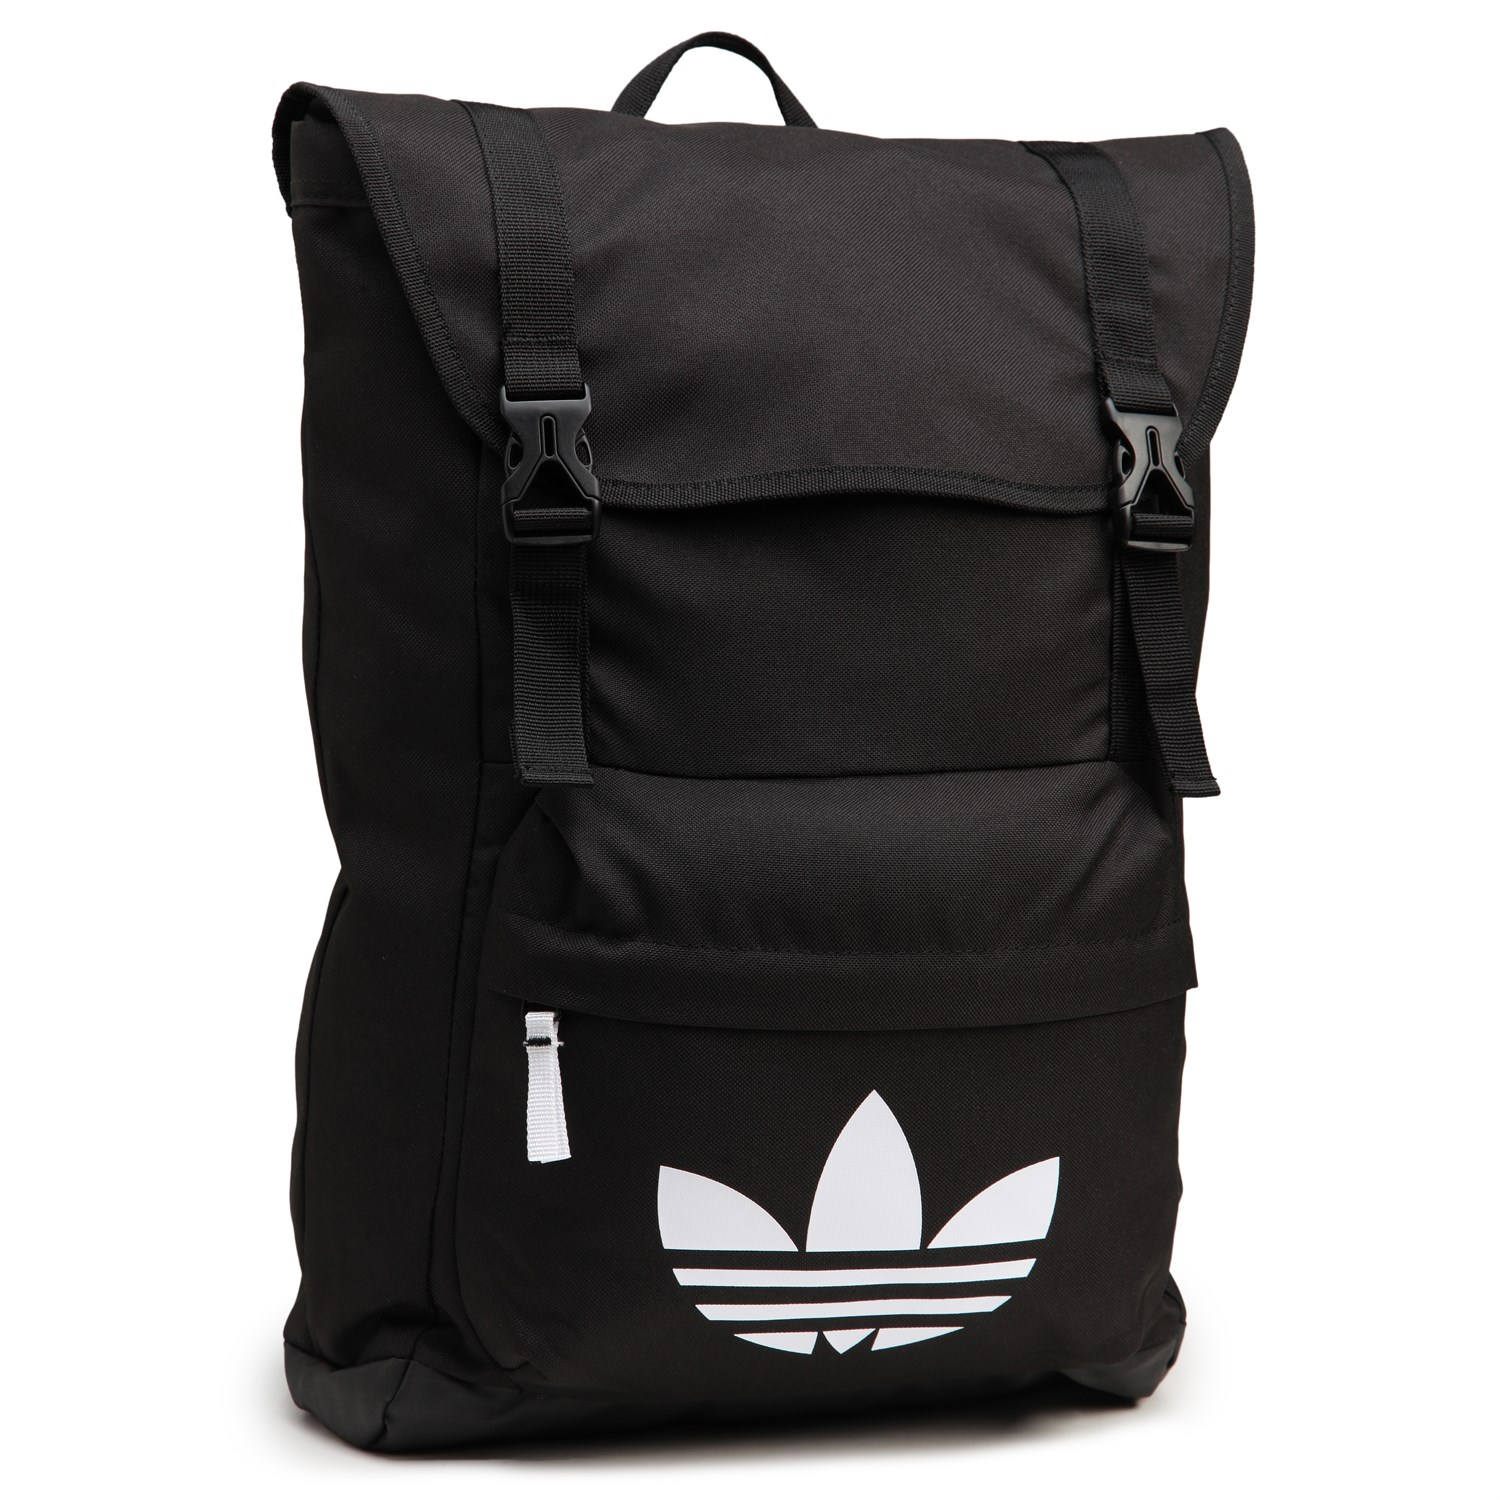 Buy adidas sackpack price   OFF79% Discounted 11d74ea1dc44f